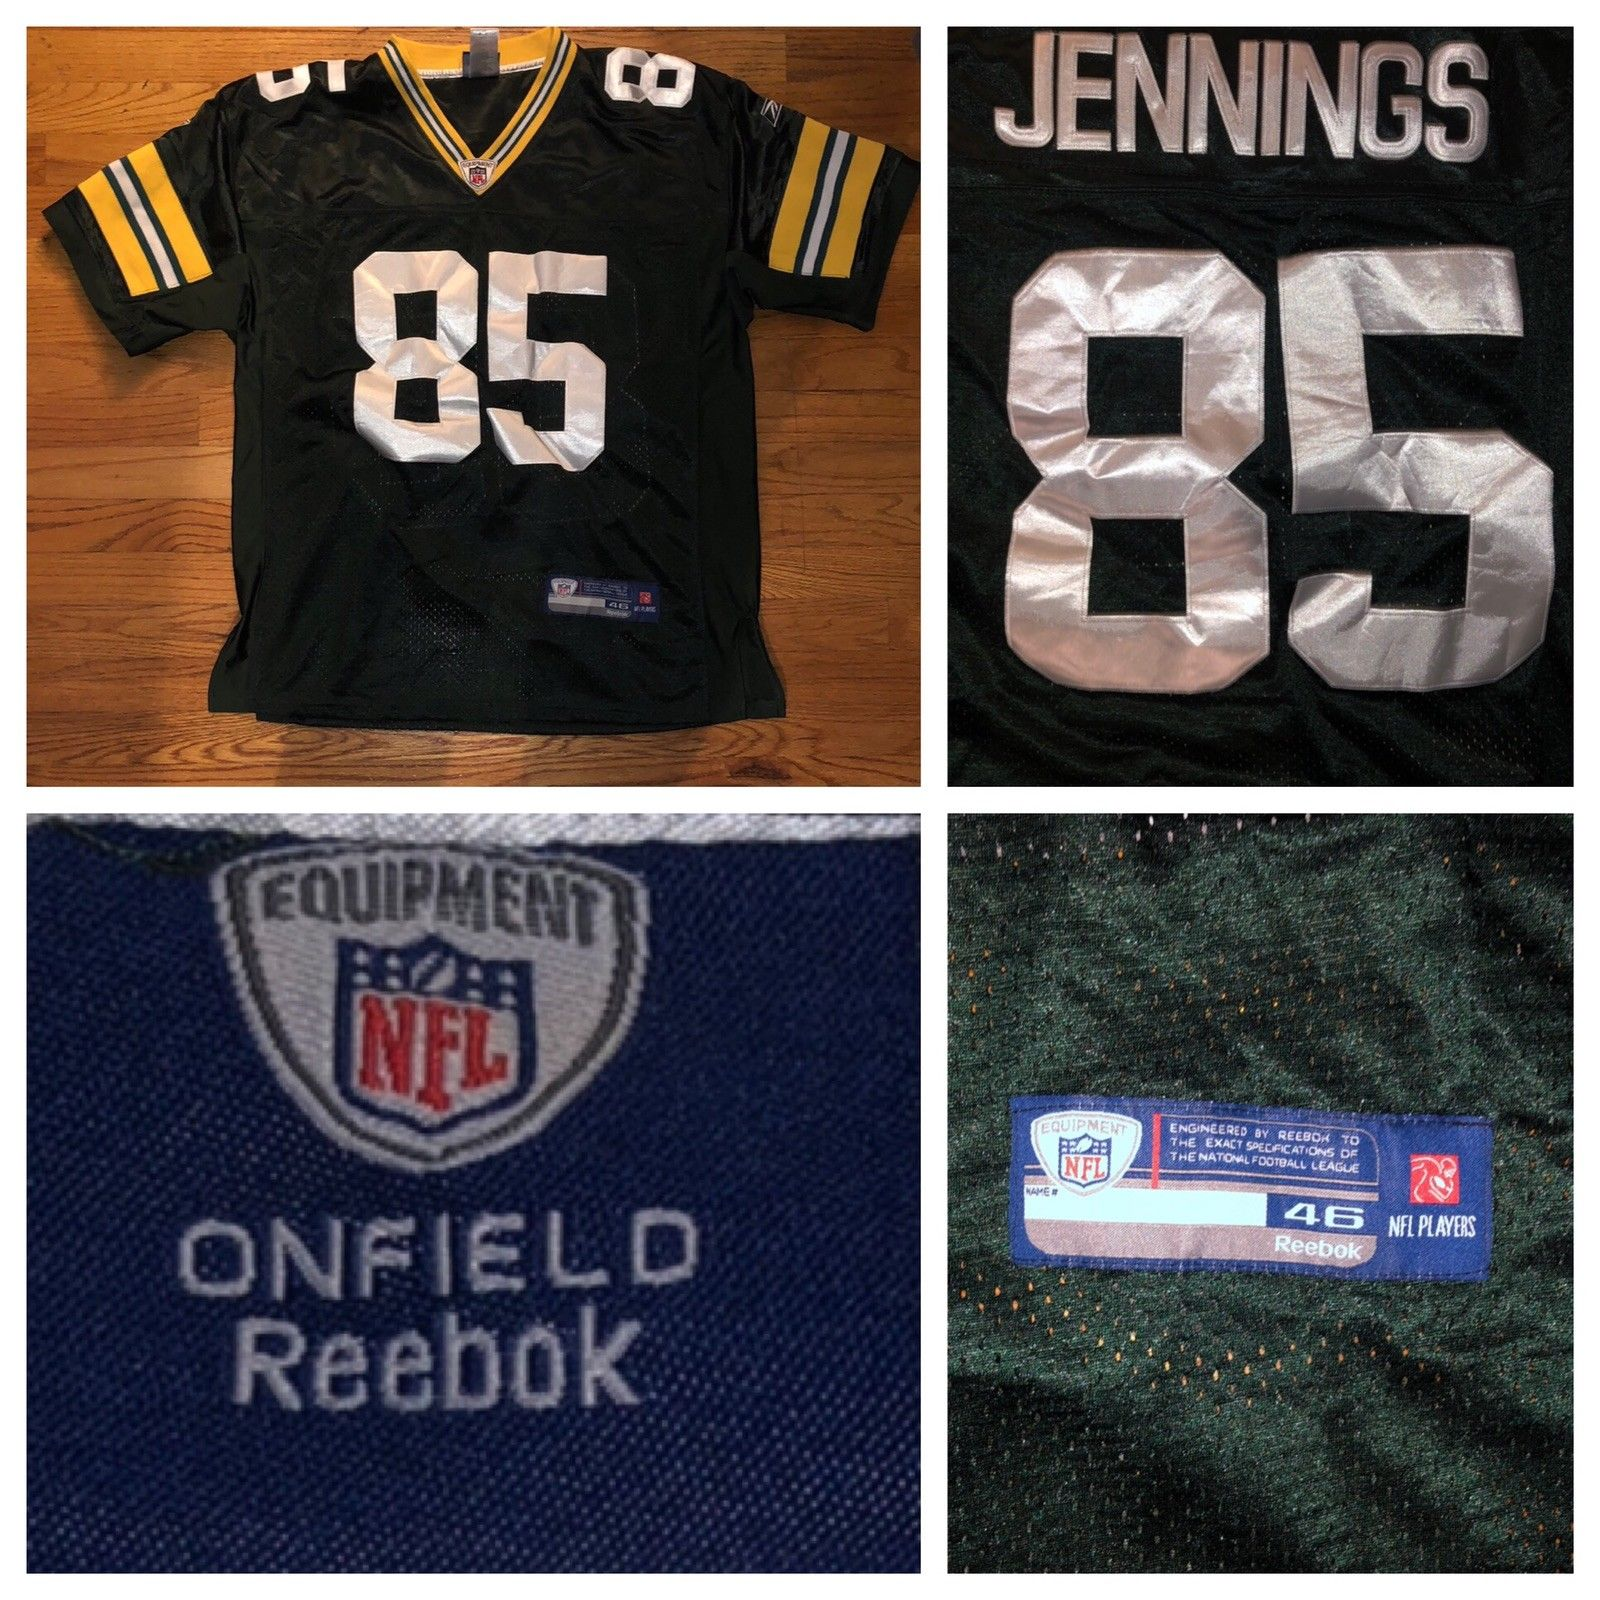 Reebok On Field Greg Jennings Green Bay Packers NFL Sewn Men's Jersey Size 46